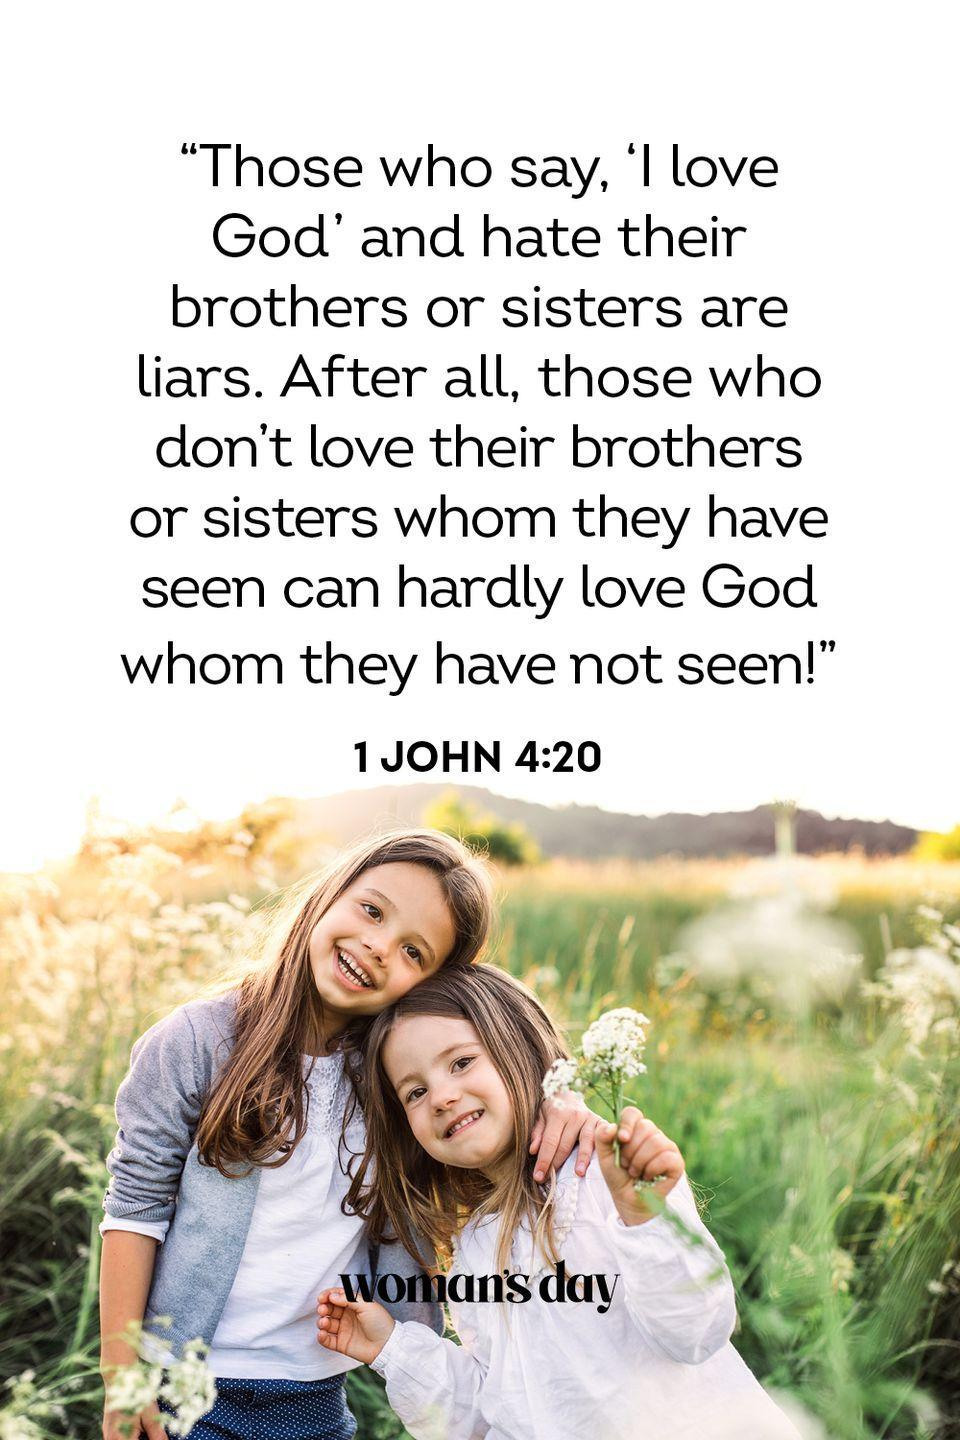 """<p>""""Those who say, 'I love God' and hate their brothers or sisters are liars. After all, those who don't love their brothers or sisters whom they have seen can hardly love God whom they have not seen!"""" — 1 John 4:20</p><p><strong><strong>The Good News: </strong></strong>You cannot say you truly love the Lord unless you show it in your actions, which includes loving the people you hate most. </p>"""